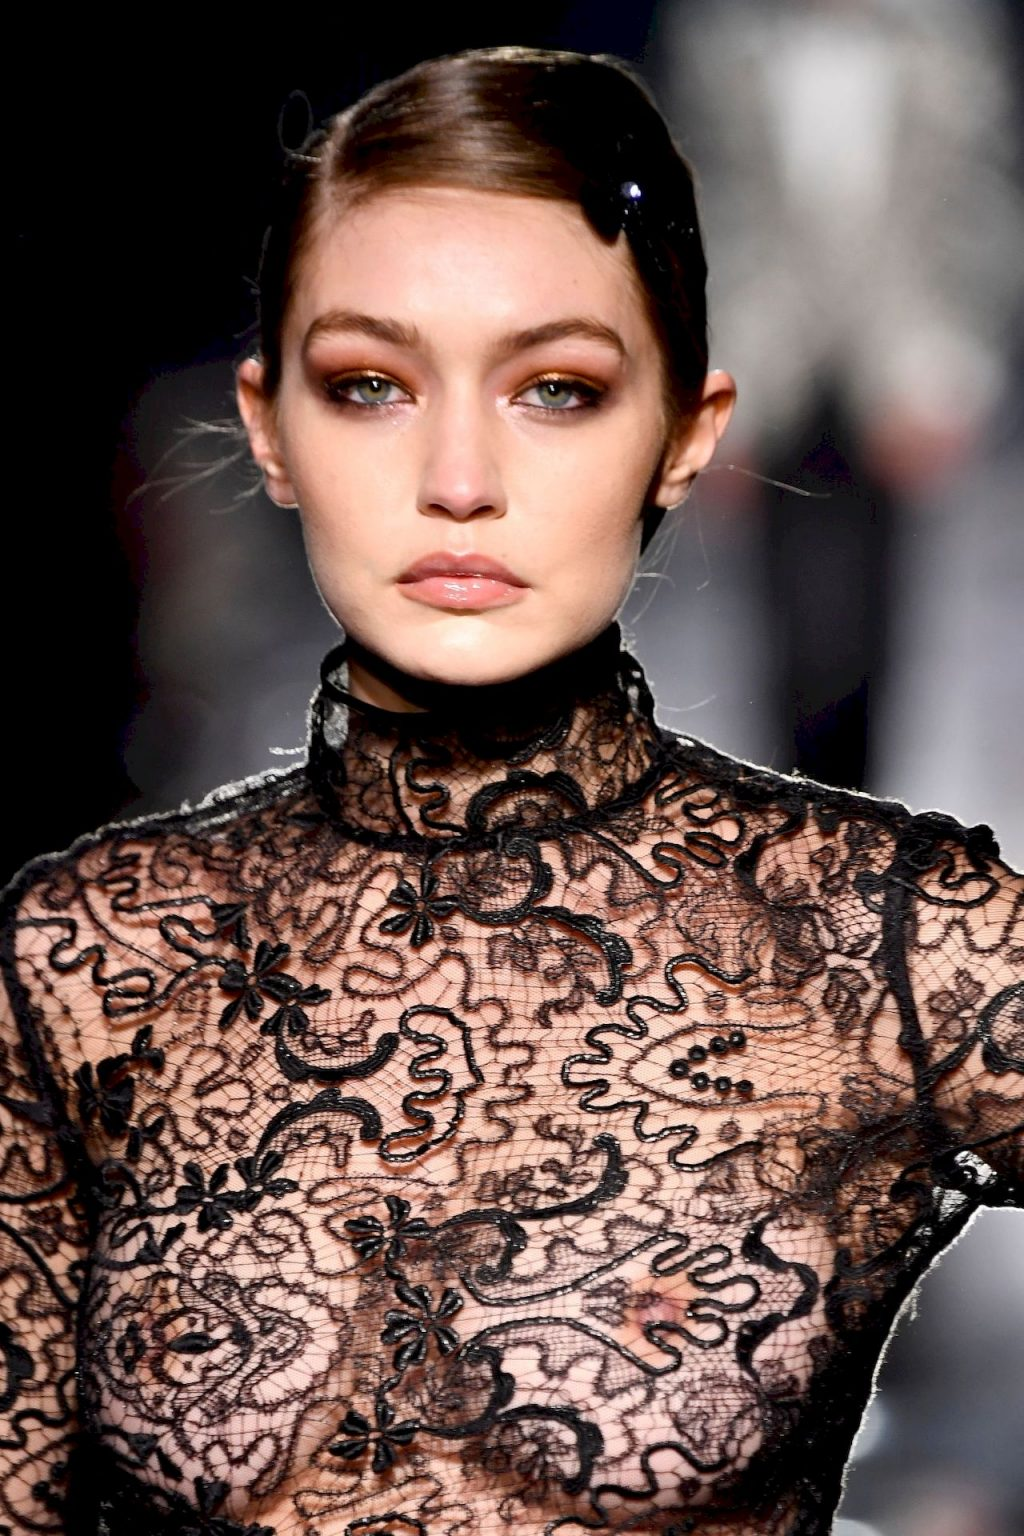 Gigi Hadid Flaunts Her Nude Tits at the Fashion Show (22 Photos + Video)